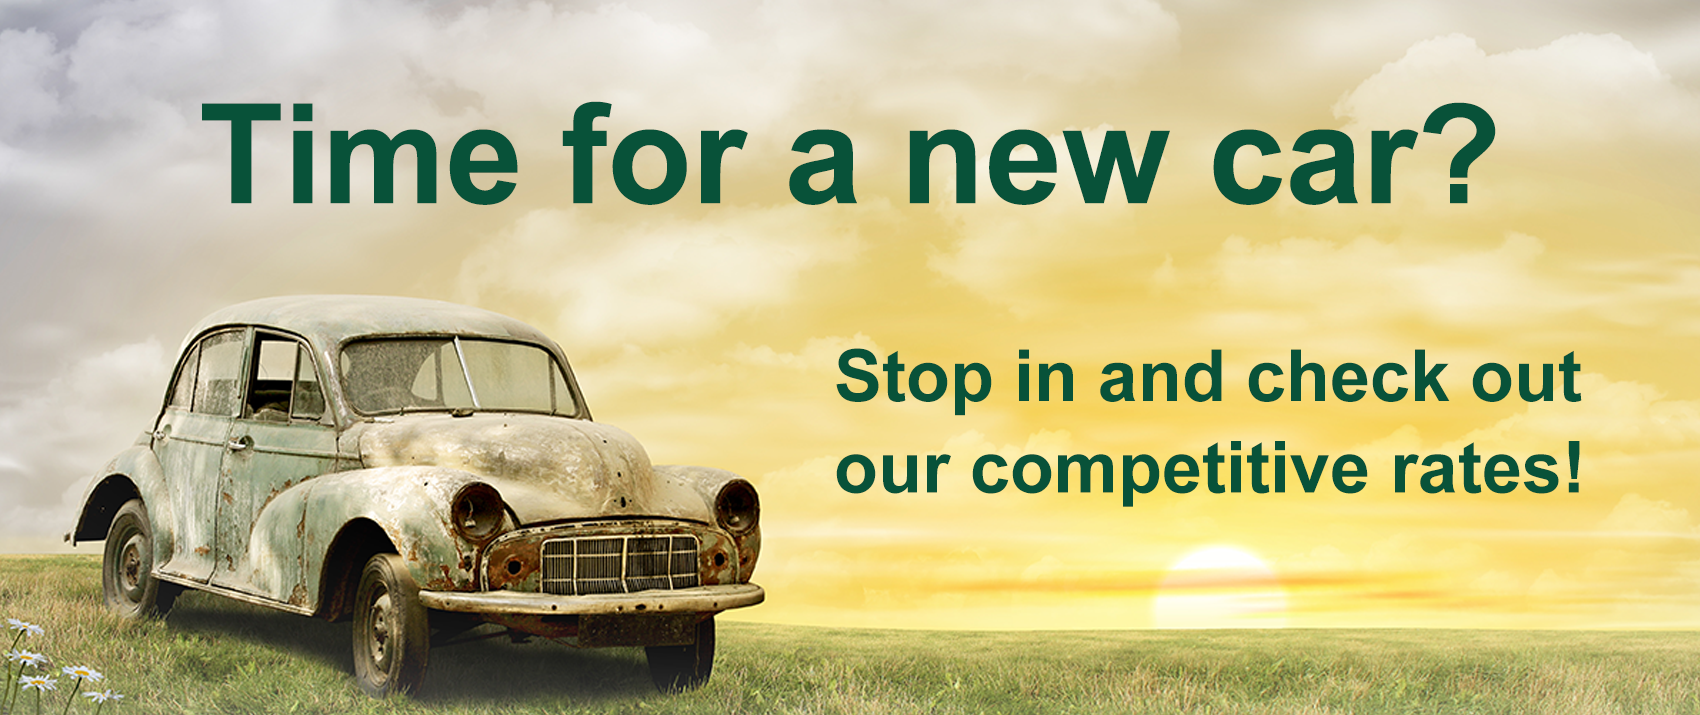 Time  for a new car? Stop in and check out our competitive rates.